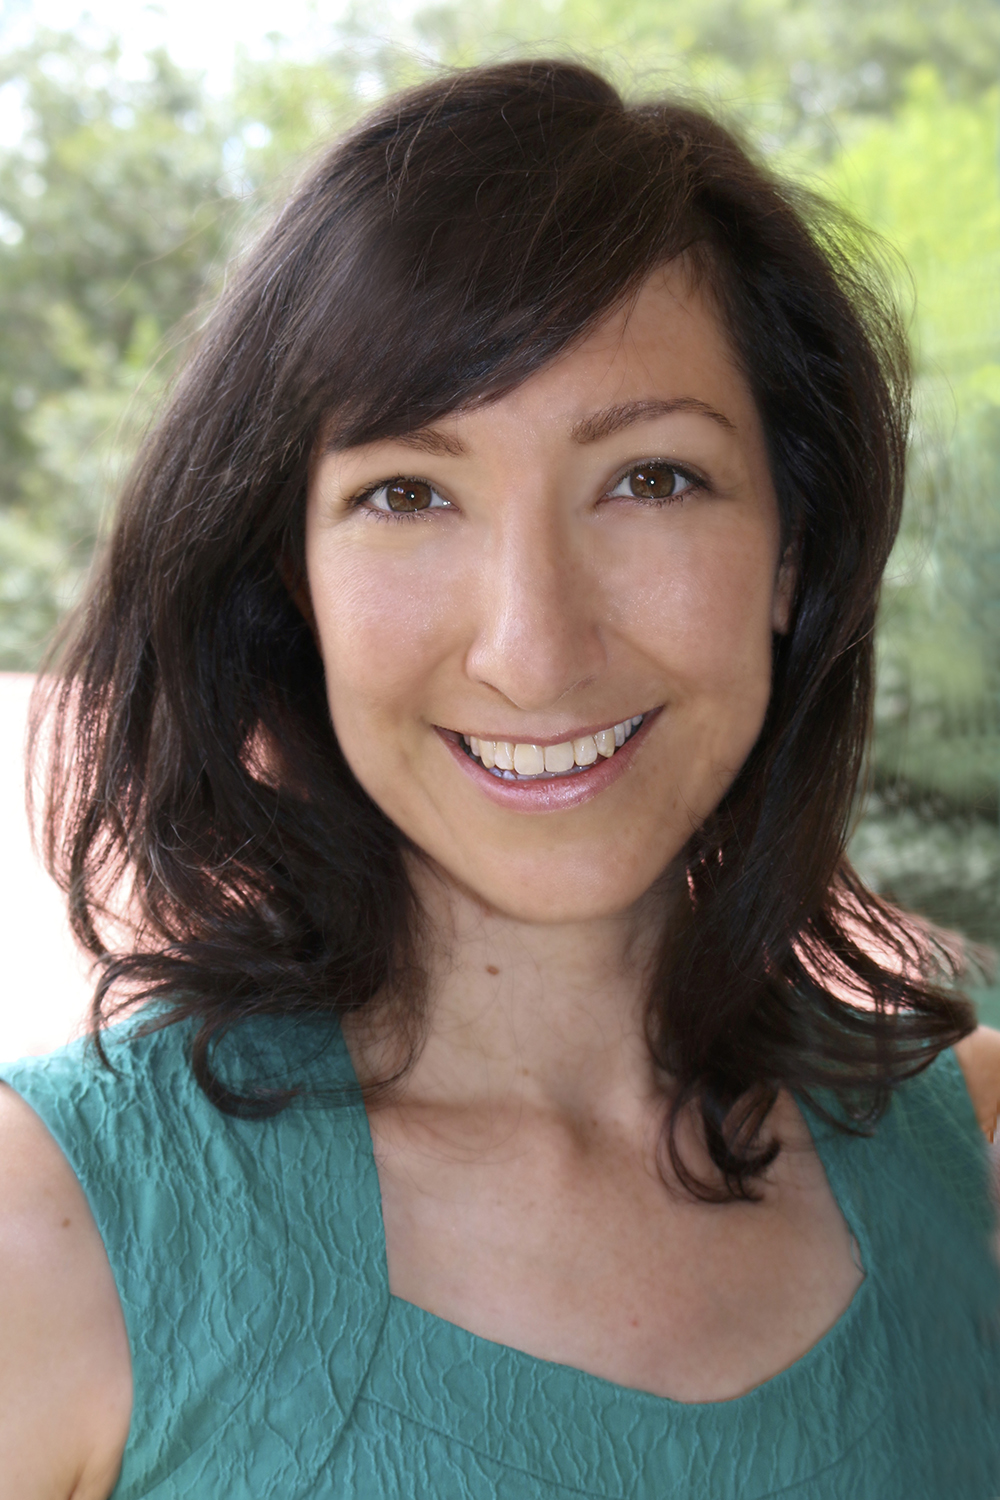 Professional headshot of Hana. She has dark shoulder length hair and is wearing a green top. She is outdoors and smiling.